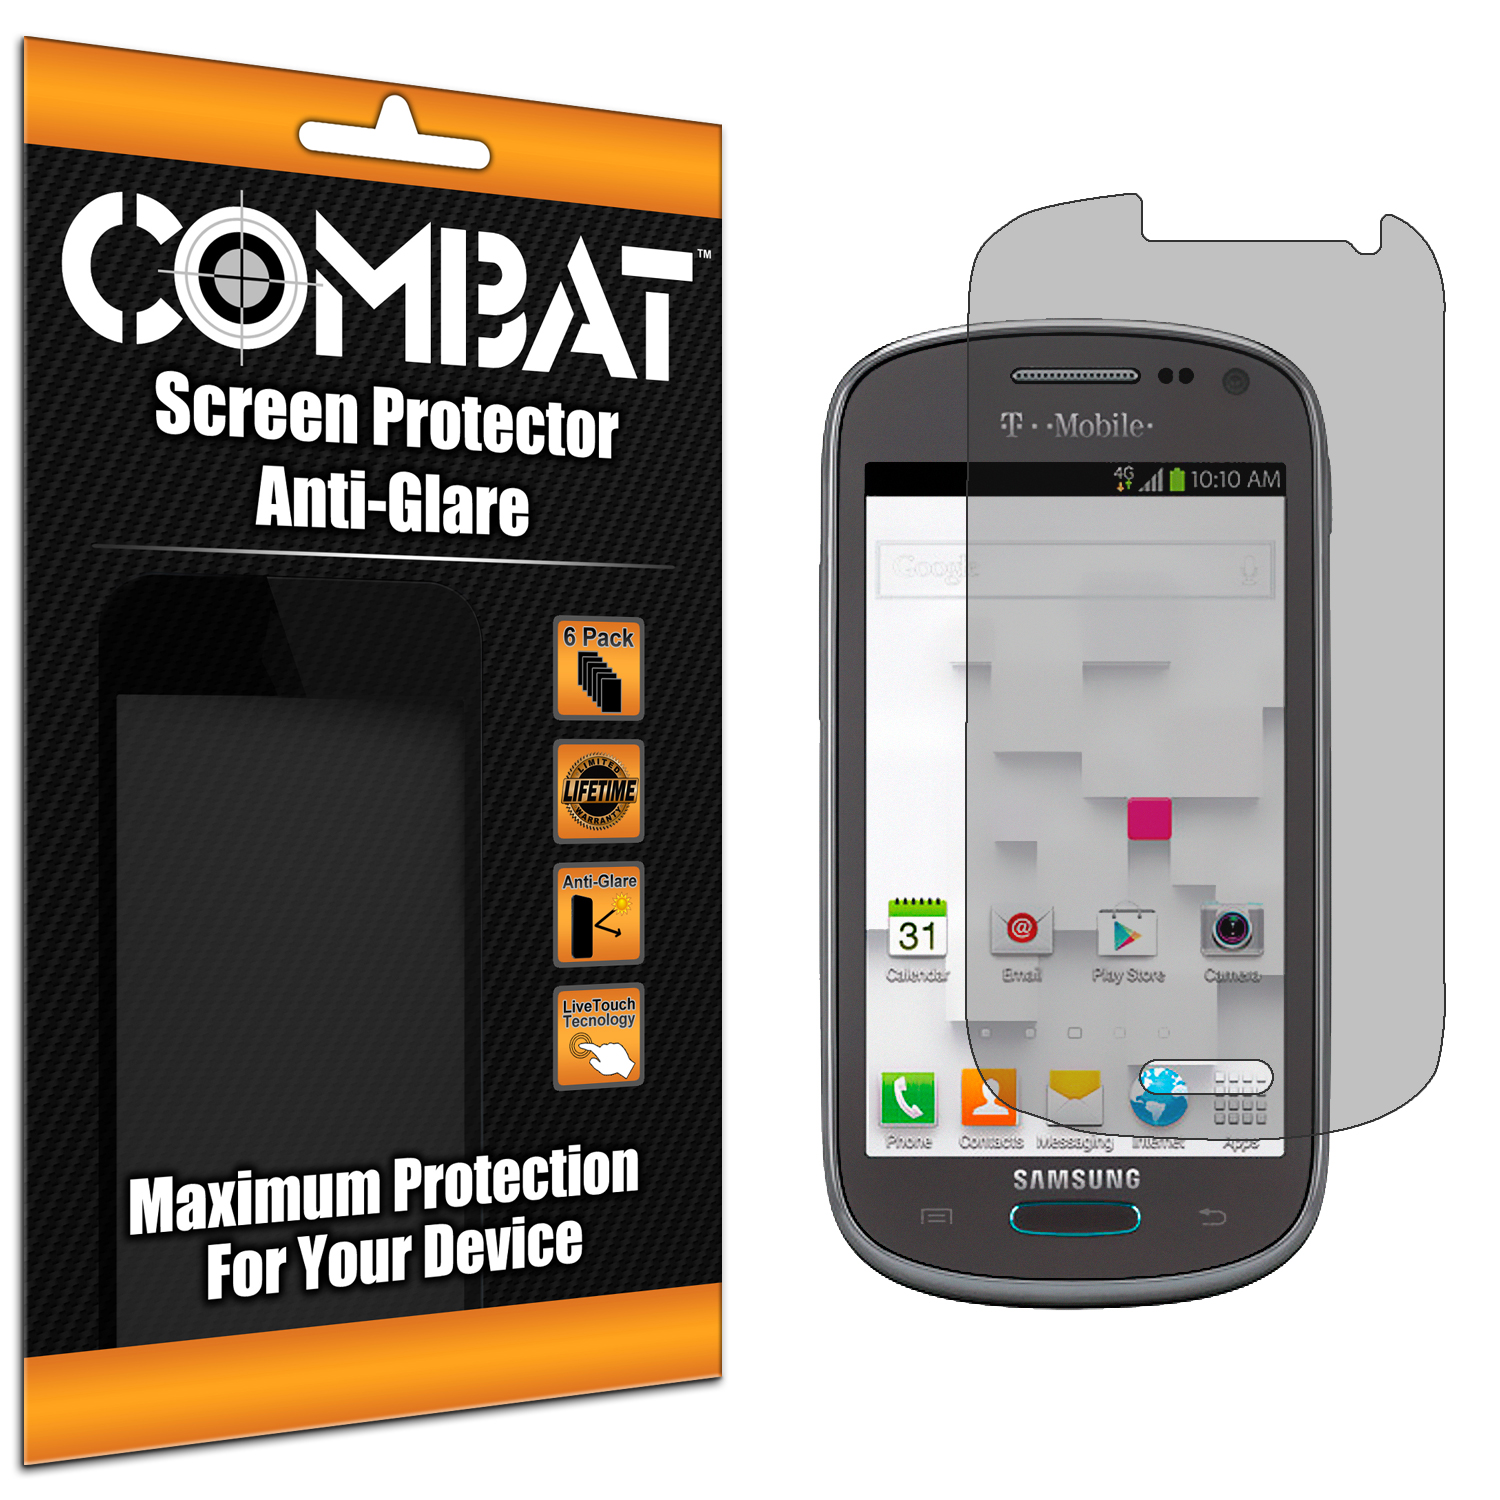 Samsung Galaxy Exhibit T599 Combat 6 Pack Anti-Glare Matte Screen Protector